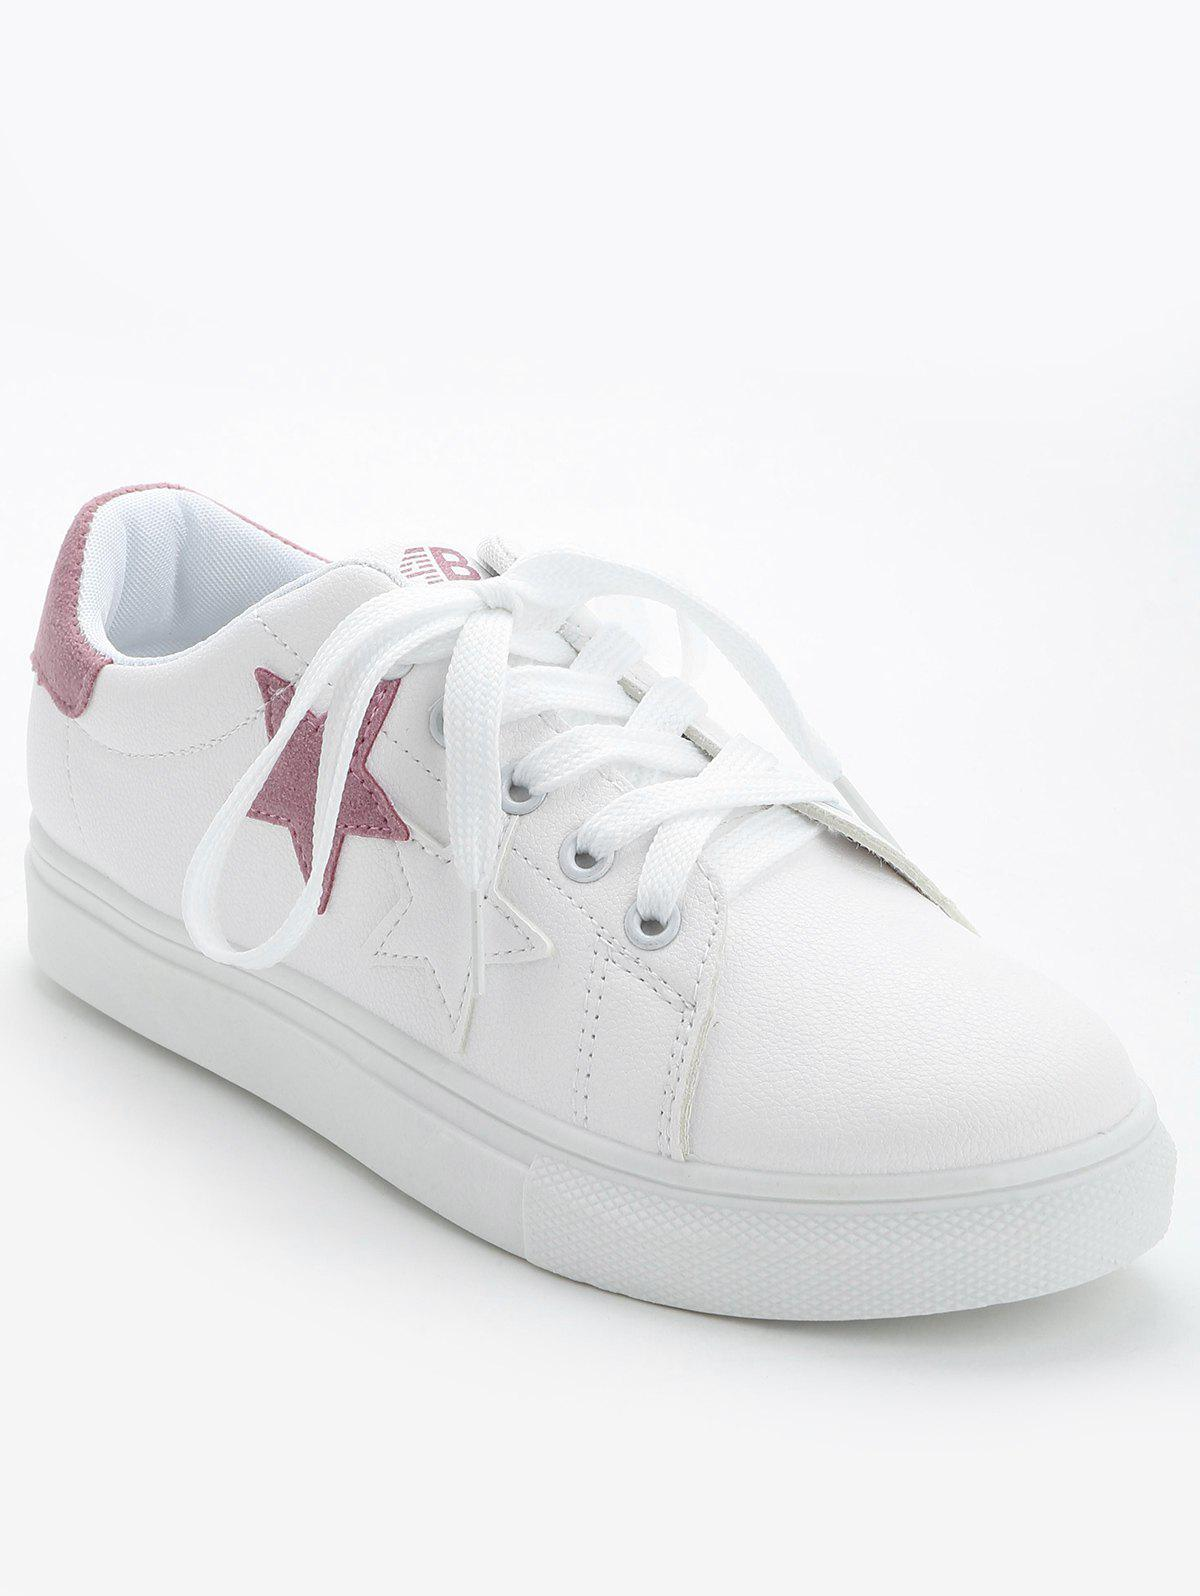 Contrasting Color Pentagram Skate Shoes - PAPAYA 39